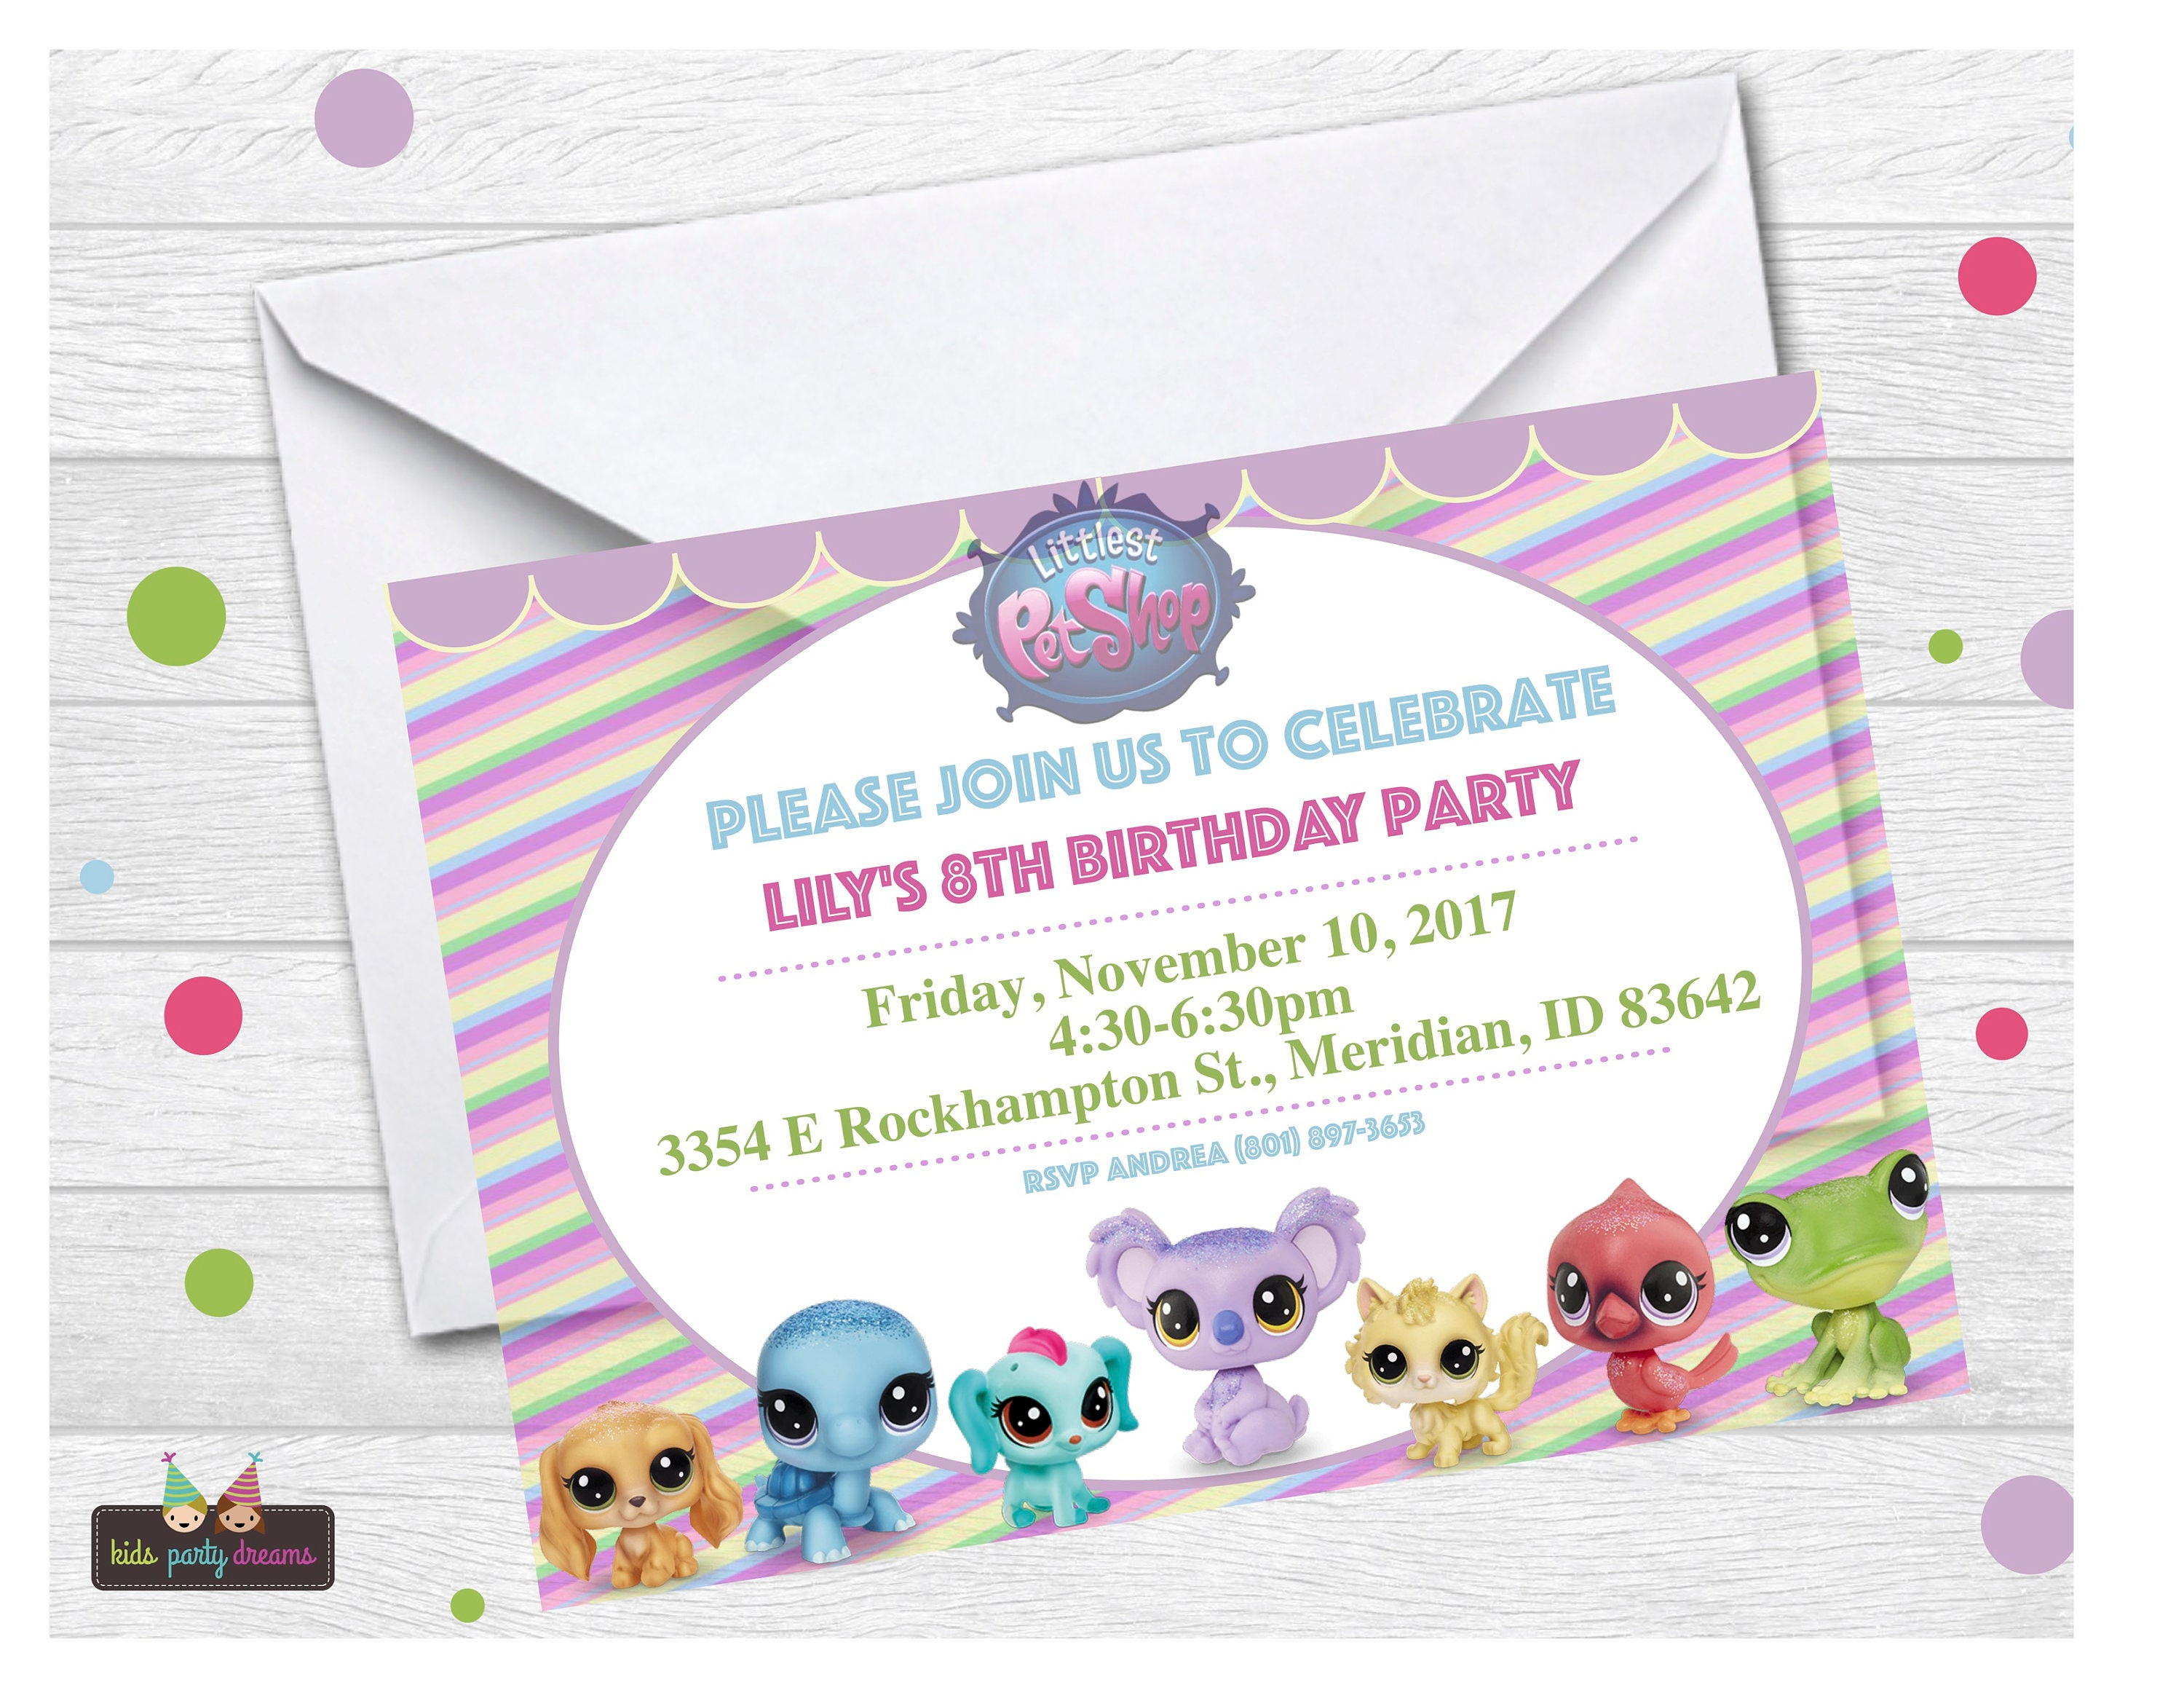 Littlest Pet Shop Invitation LPS Invitation Littlest Pet | Etsy